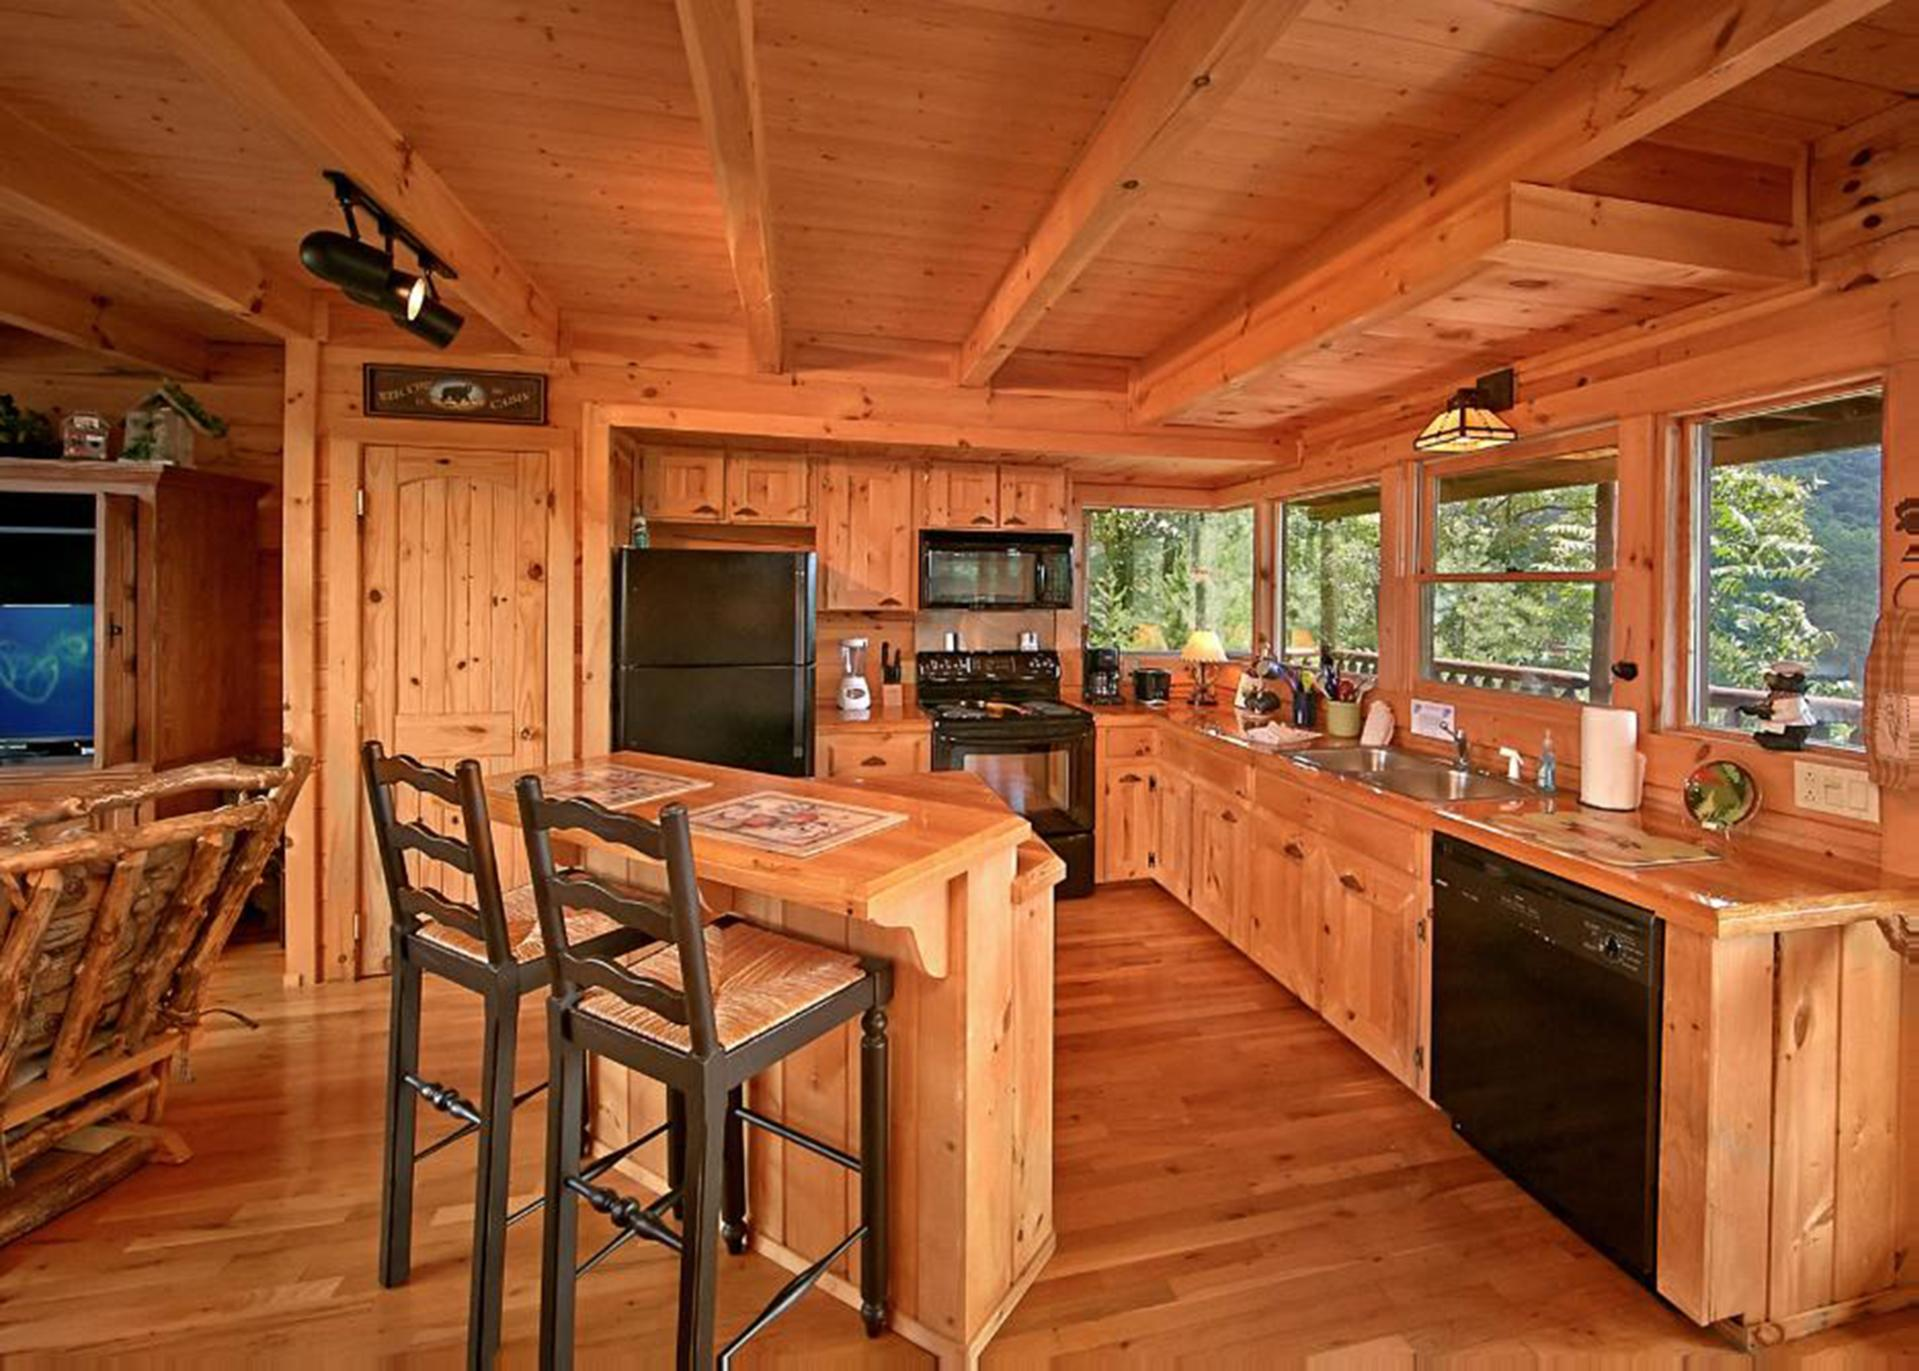 Open kitchen with all the necessities.